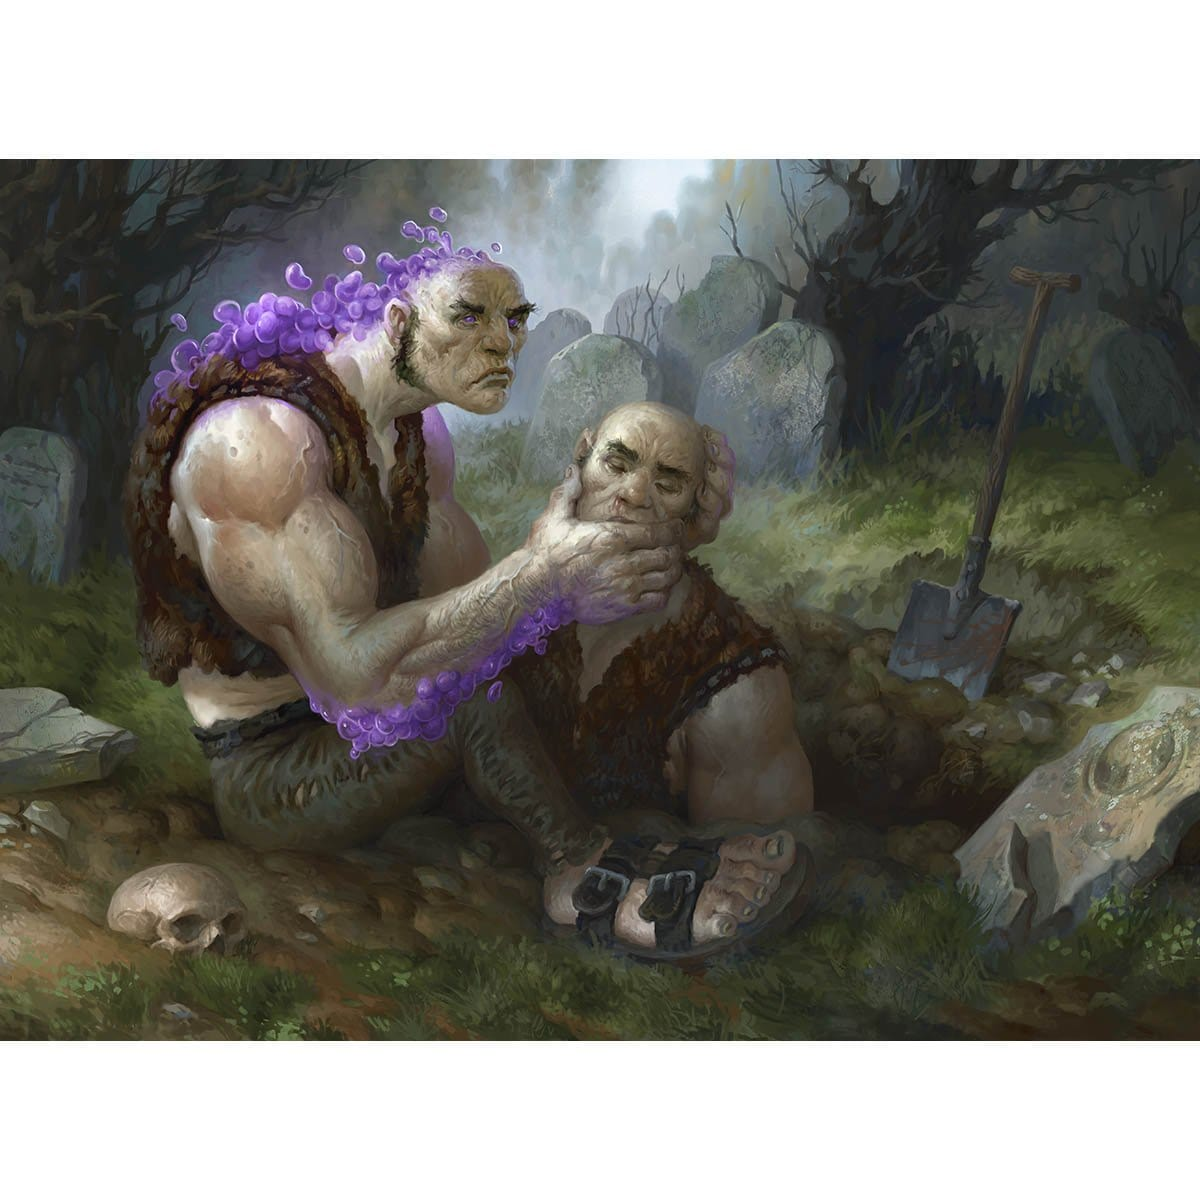 Graveshifterl Print - Print - Original Magic Art - Accessories for Magic the Gathering and other card games